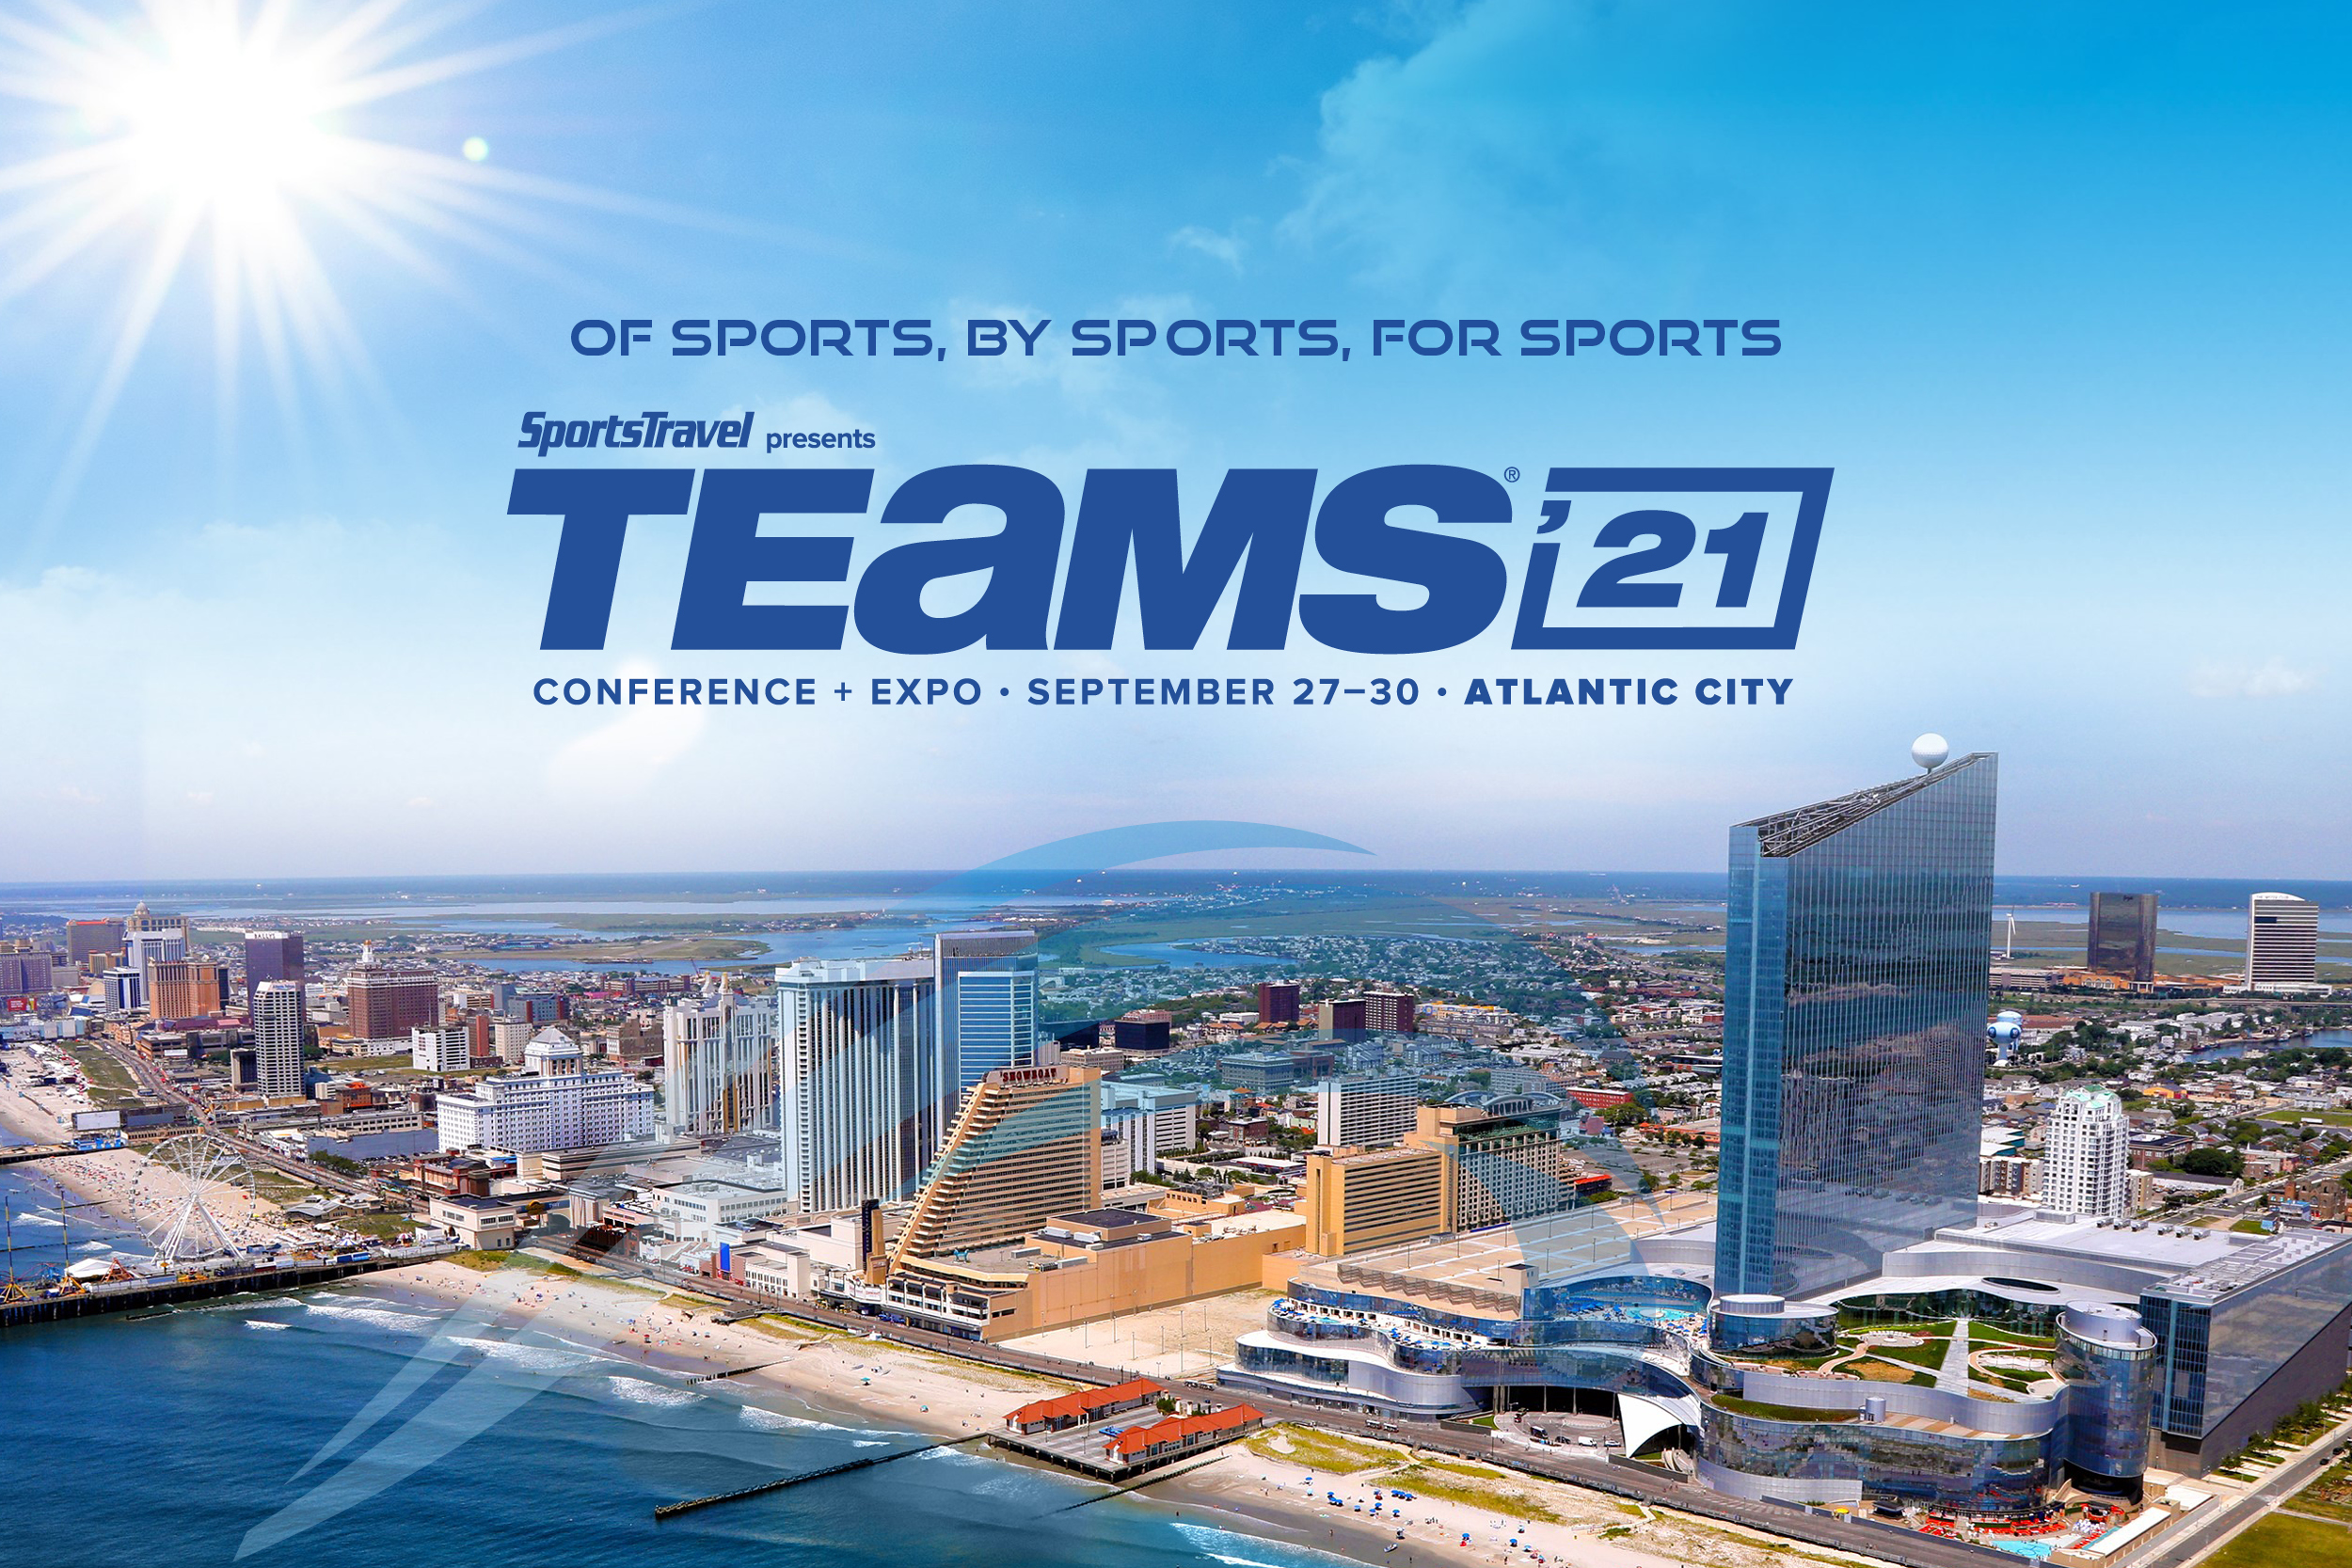 TEAMS Conference and Expo